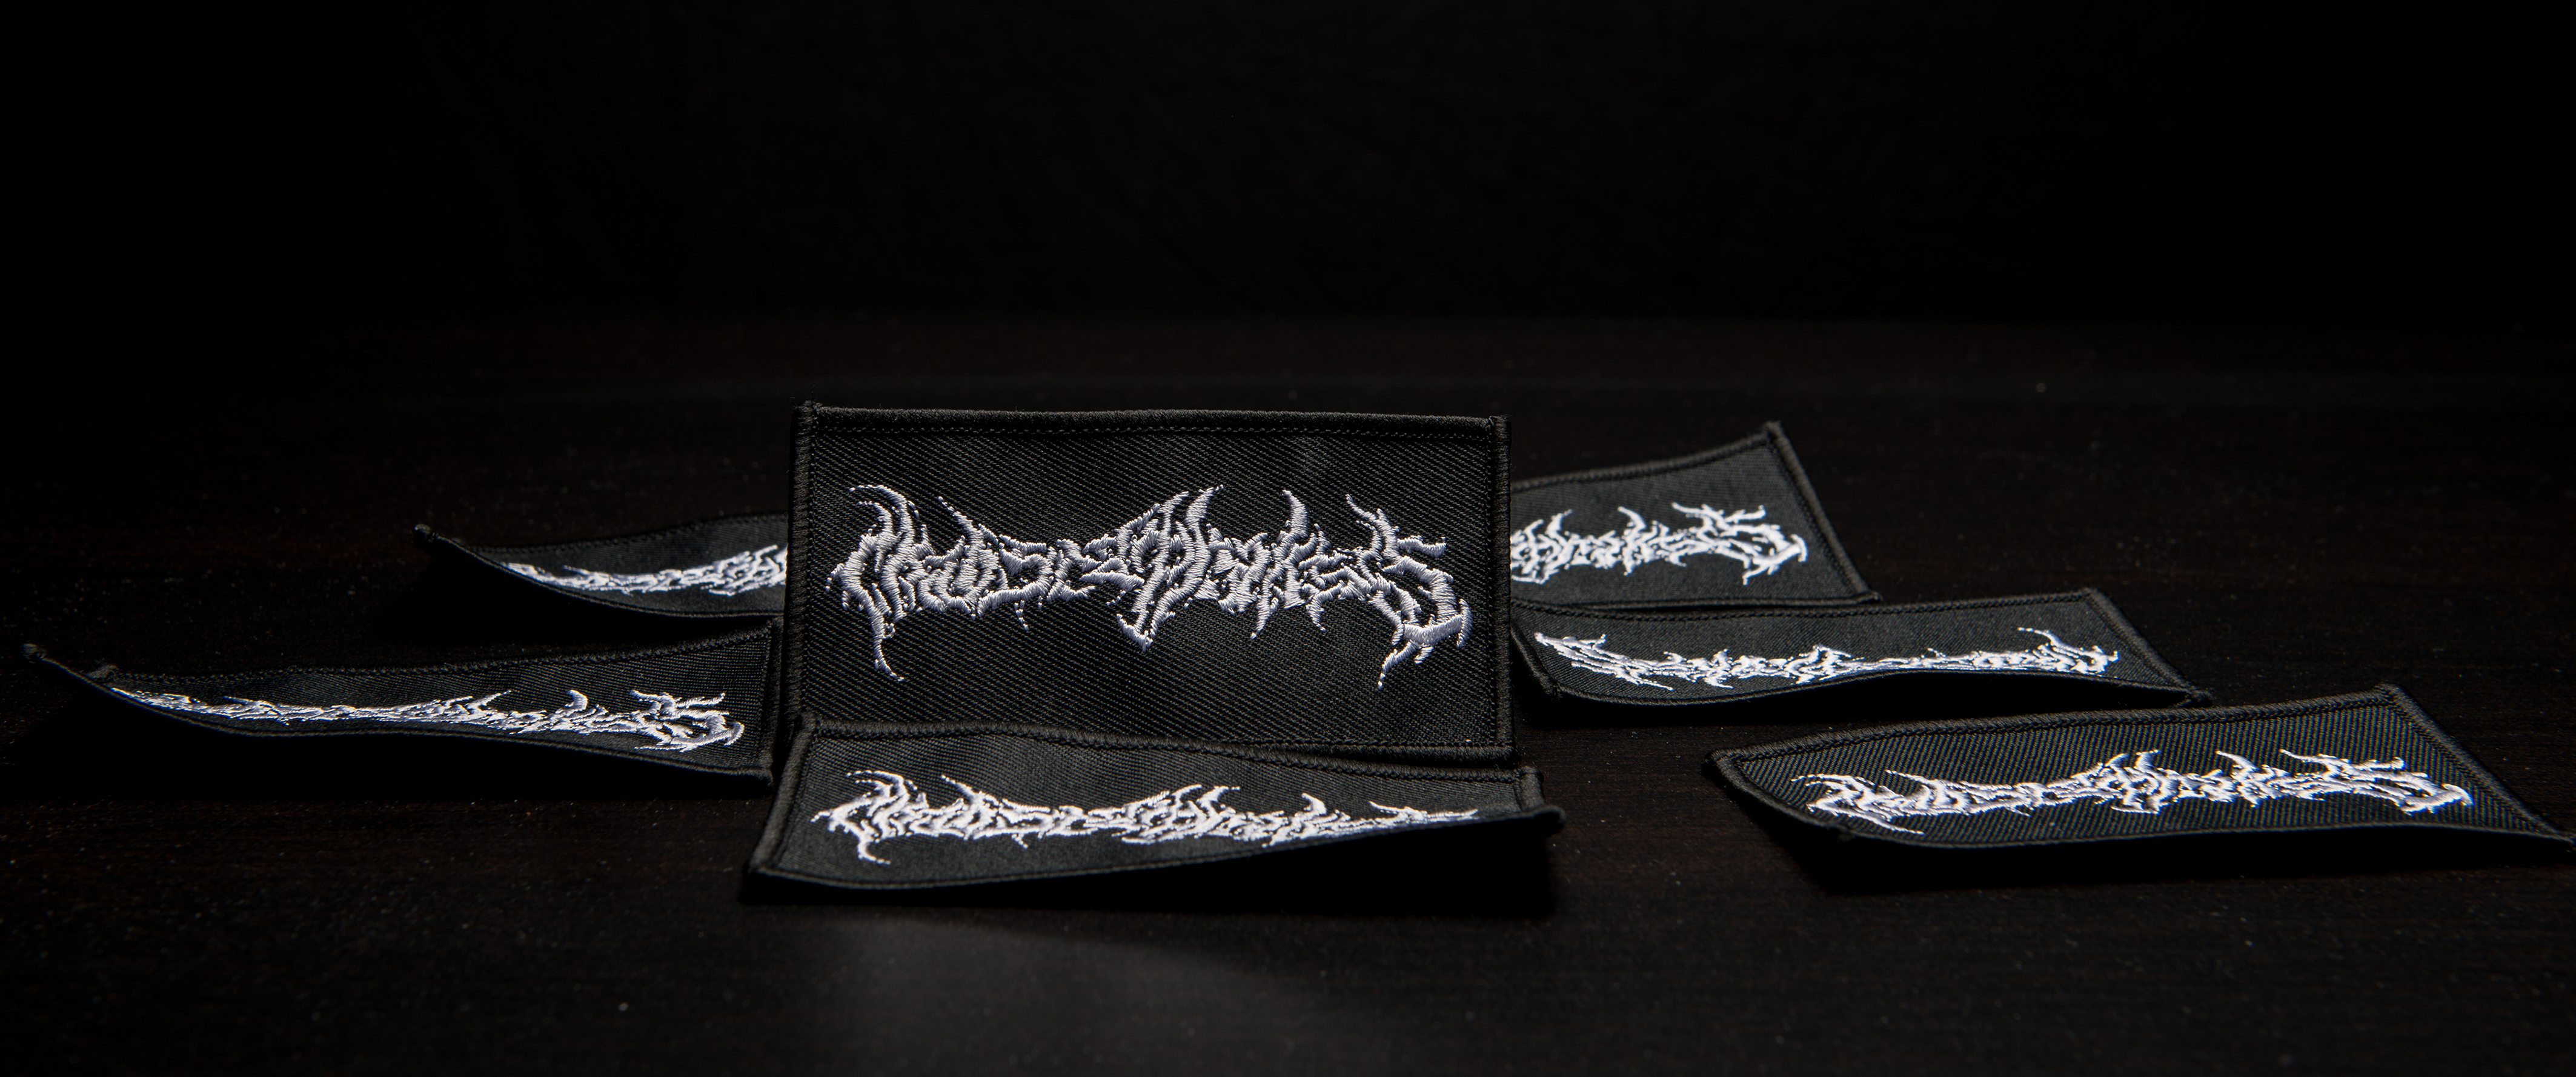 Chaos Catharsis - Logo Patch